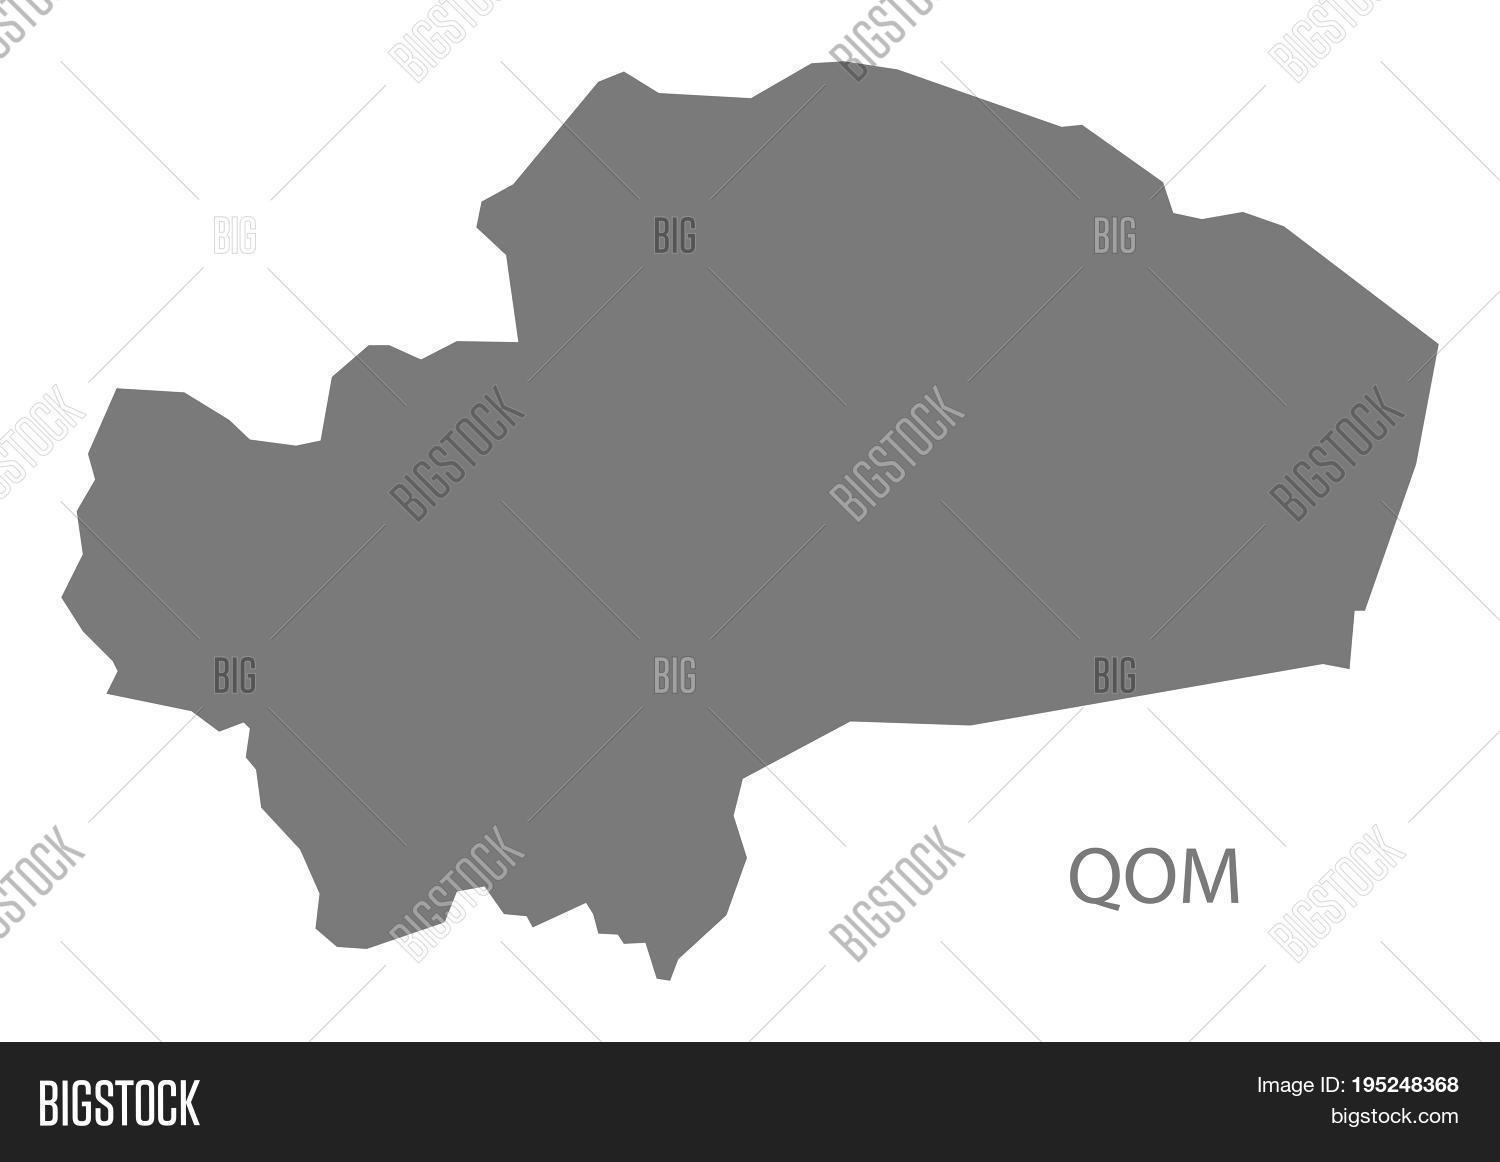 qom iran region map grey illustration silhouette shape